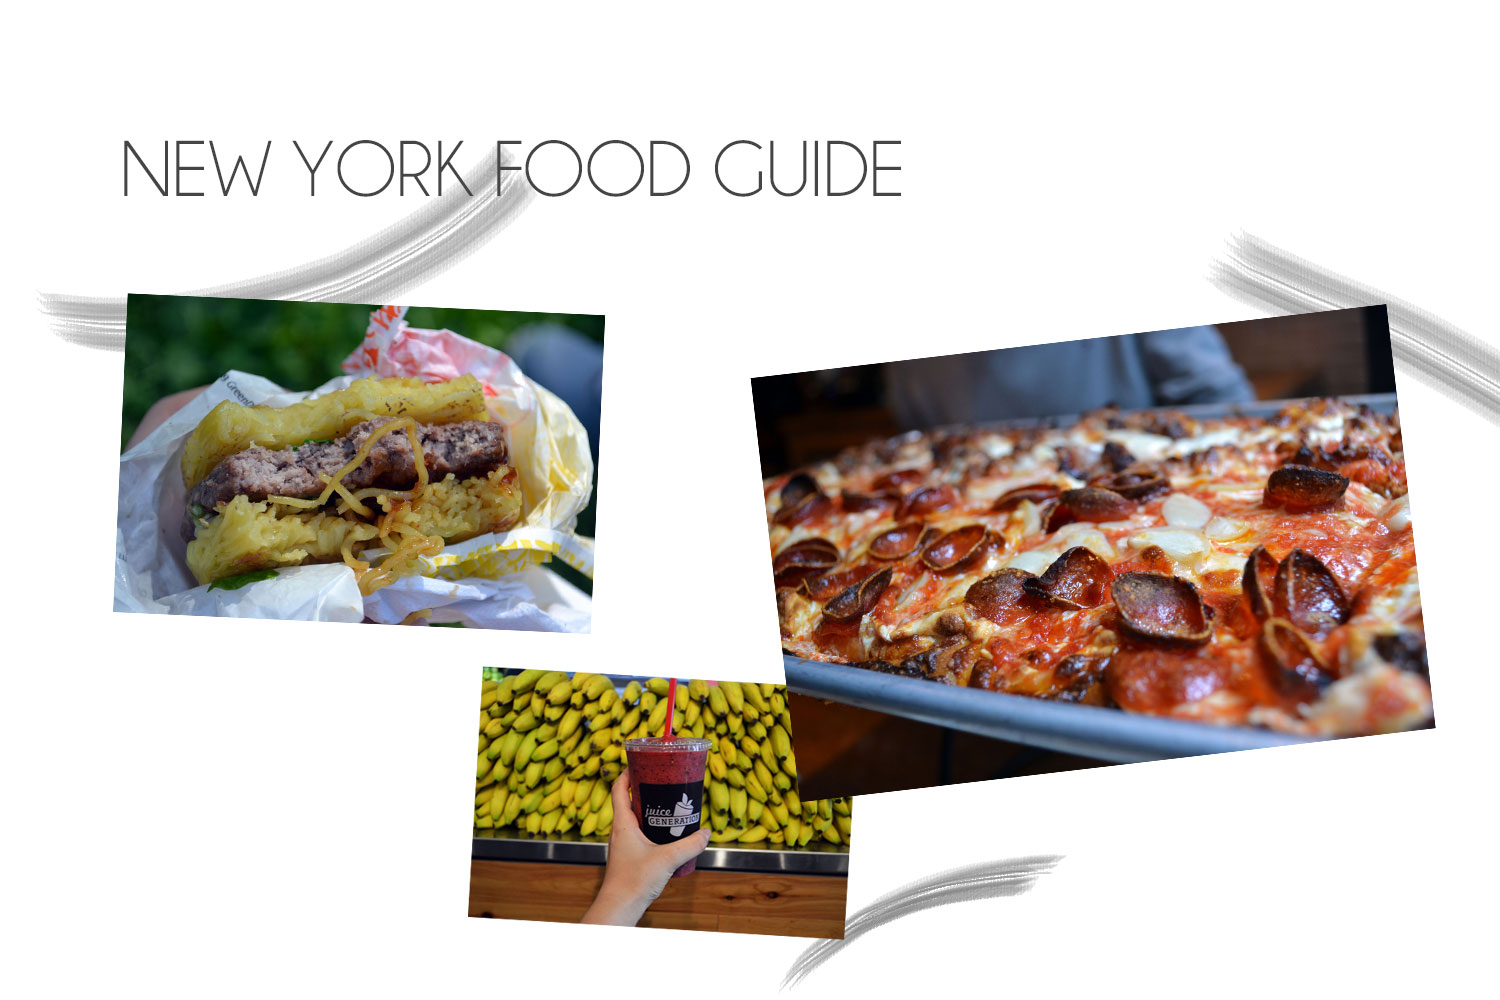 New York Food Guide: Meine Lieblingsrestaurants in NYC - New York Food Guide